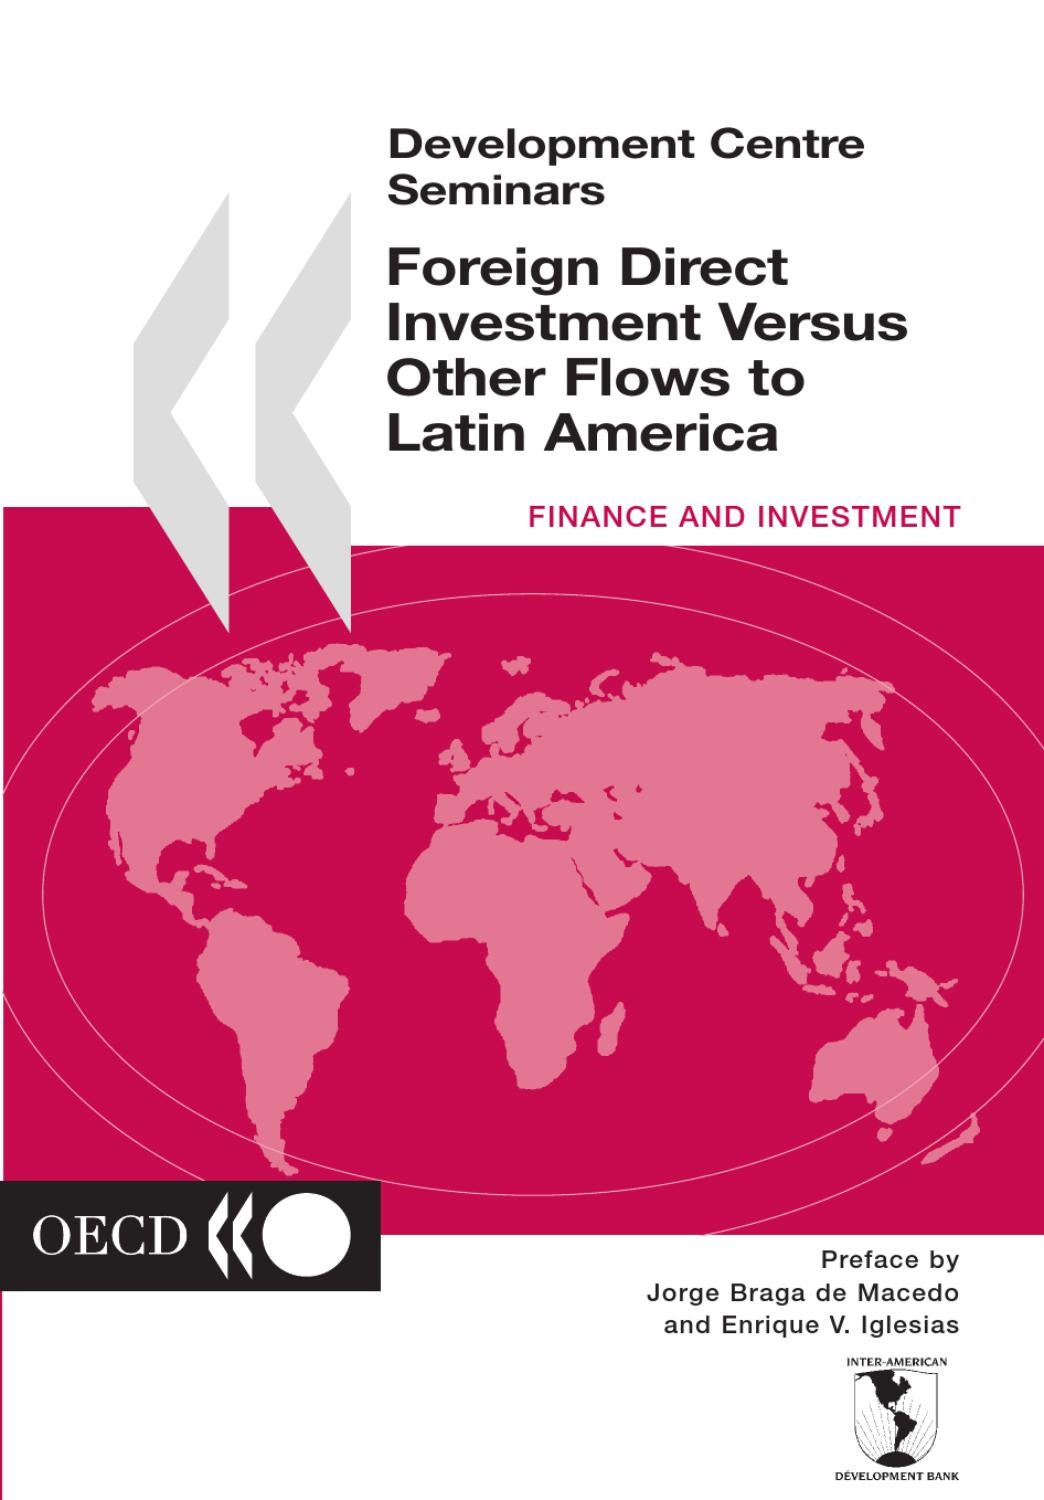 Foreign Direct Investment Versus Other Flows to Latin